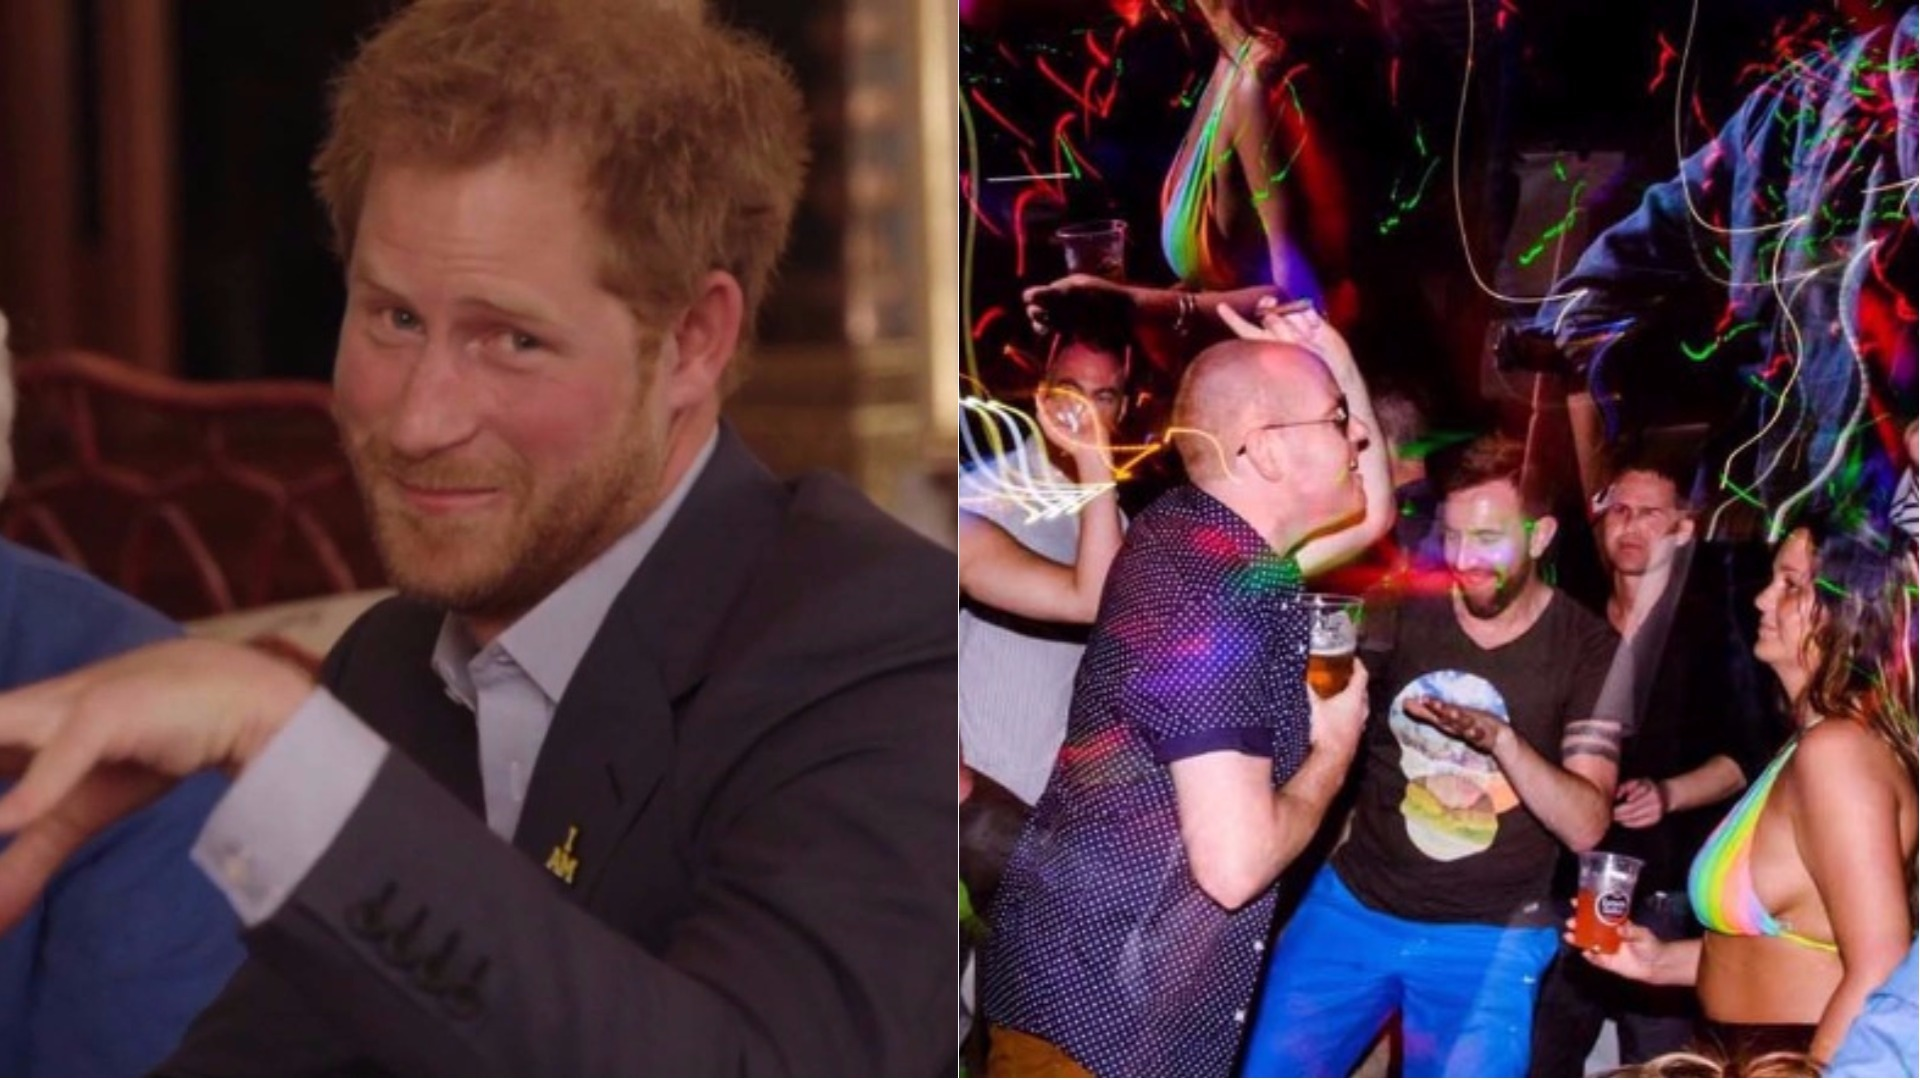 Thousands Sign Up To Attend 'Prince Harry's Stag Do' On Facebook